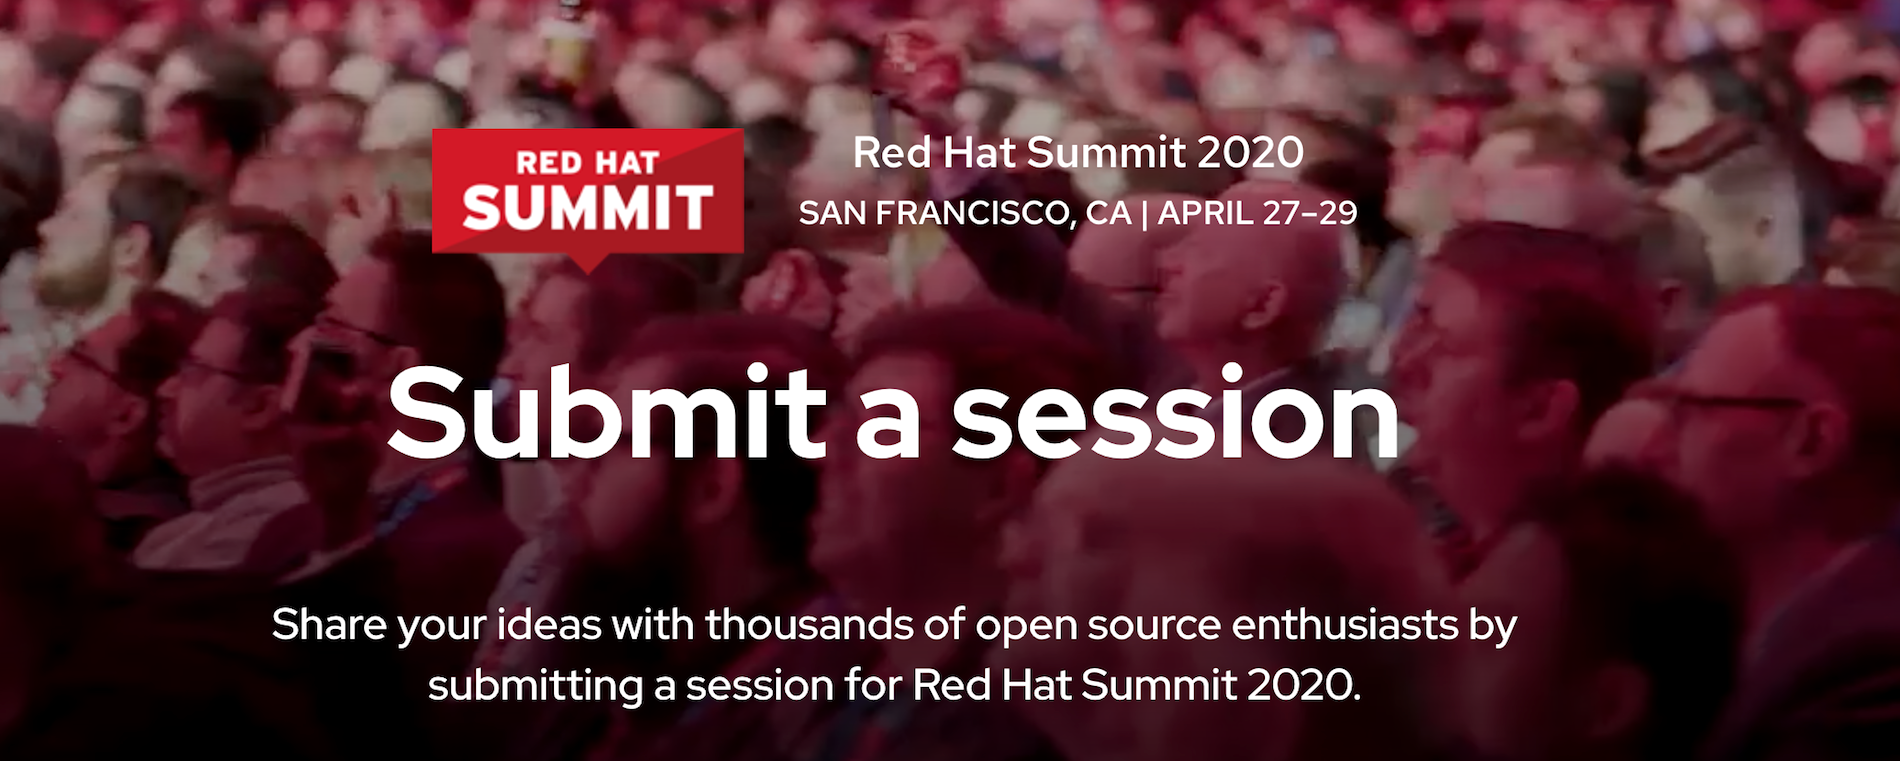 Red Hat Summit 2020: Call for Proposals for new developer track